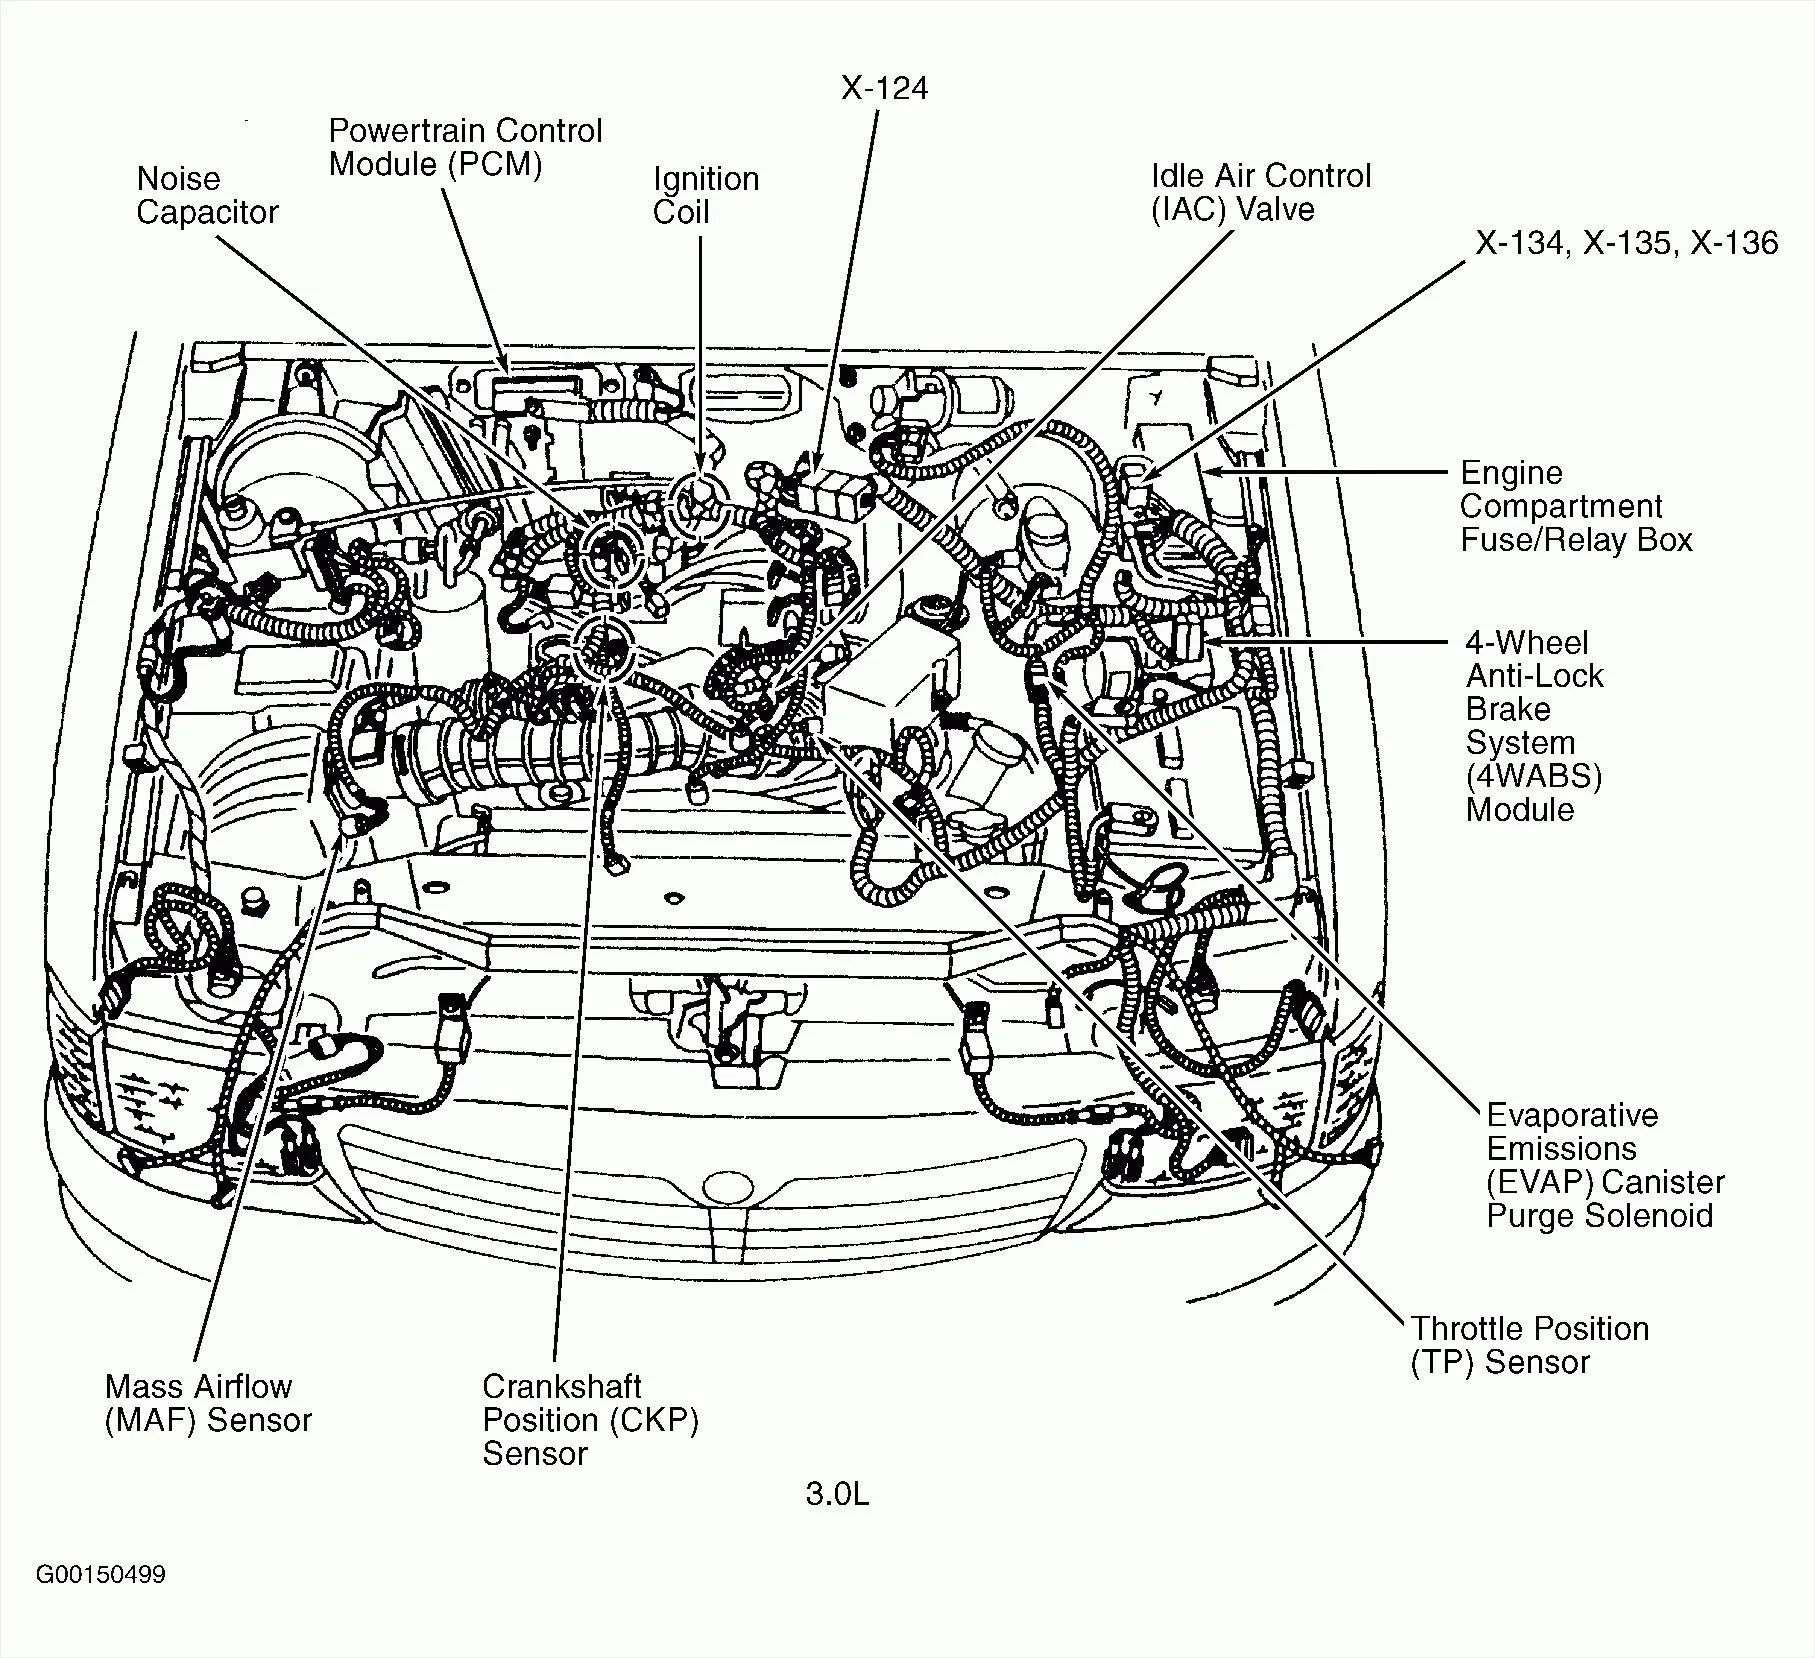 2003 chevy cavalier transmission wiring diagram car pictures